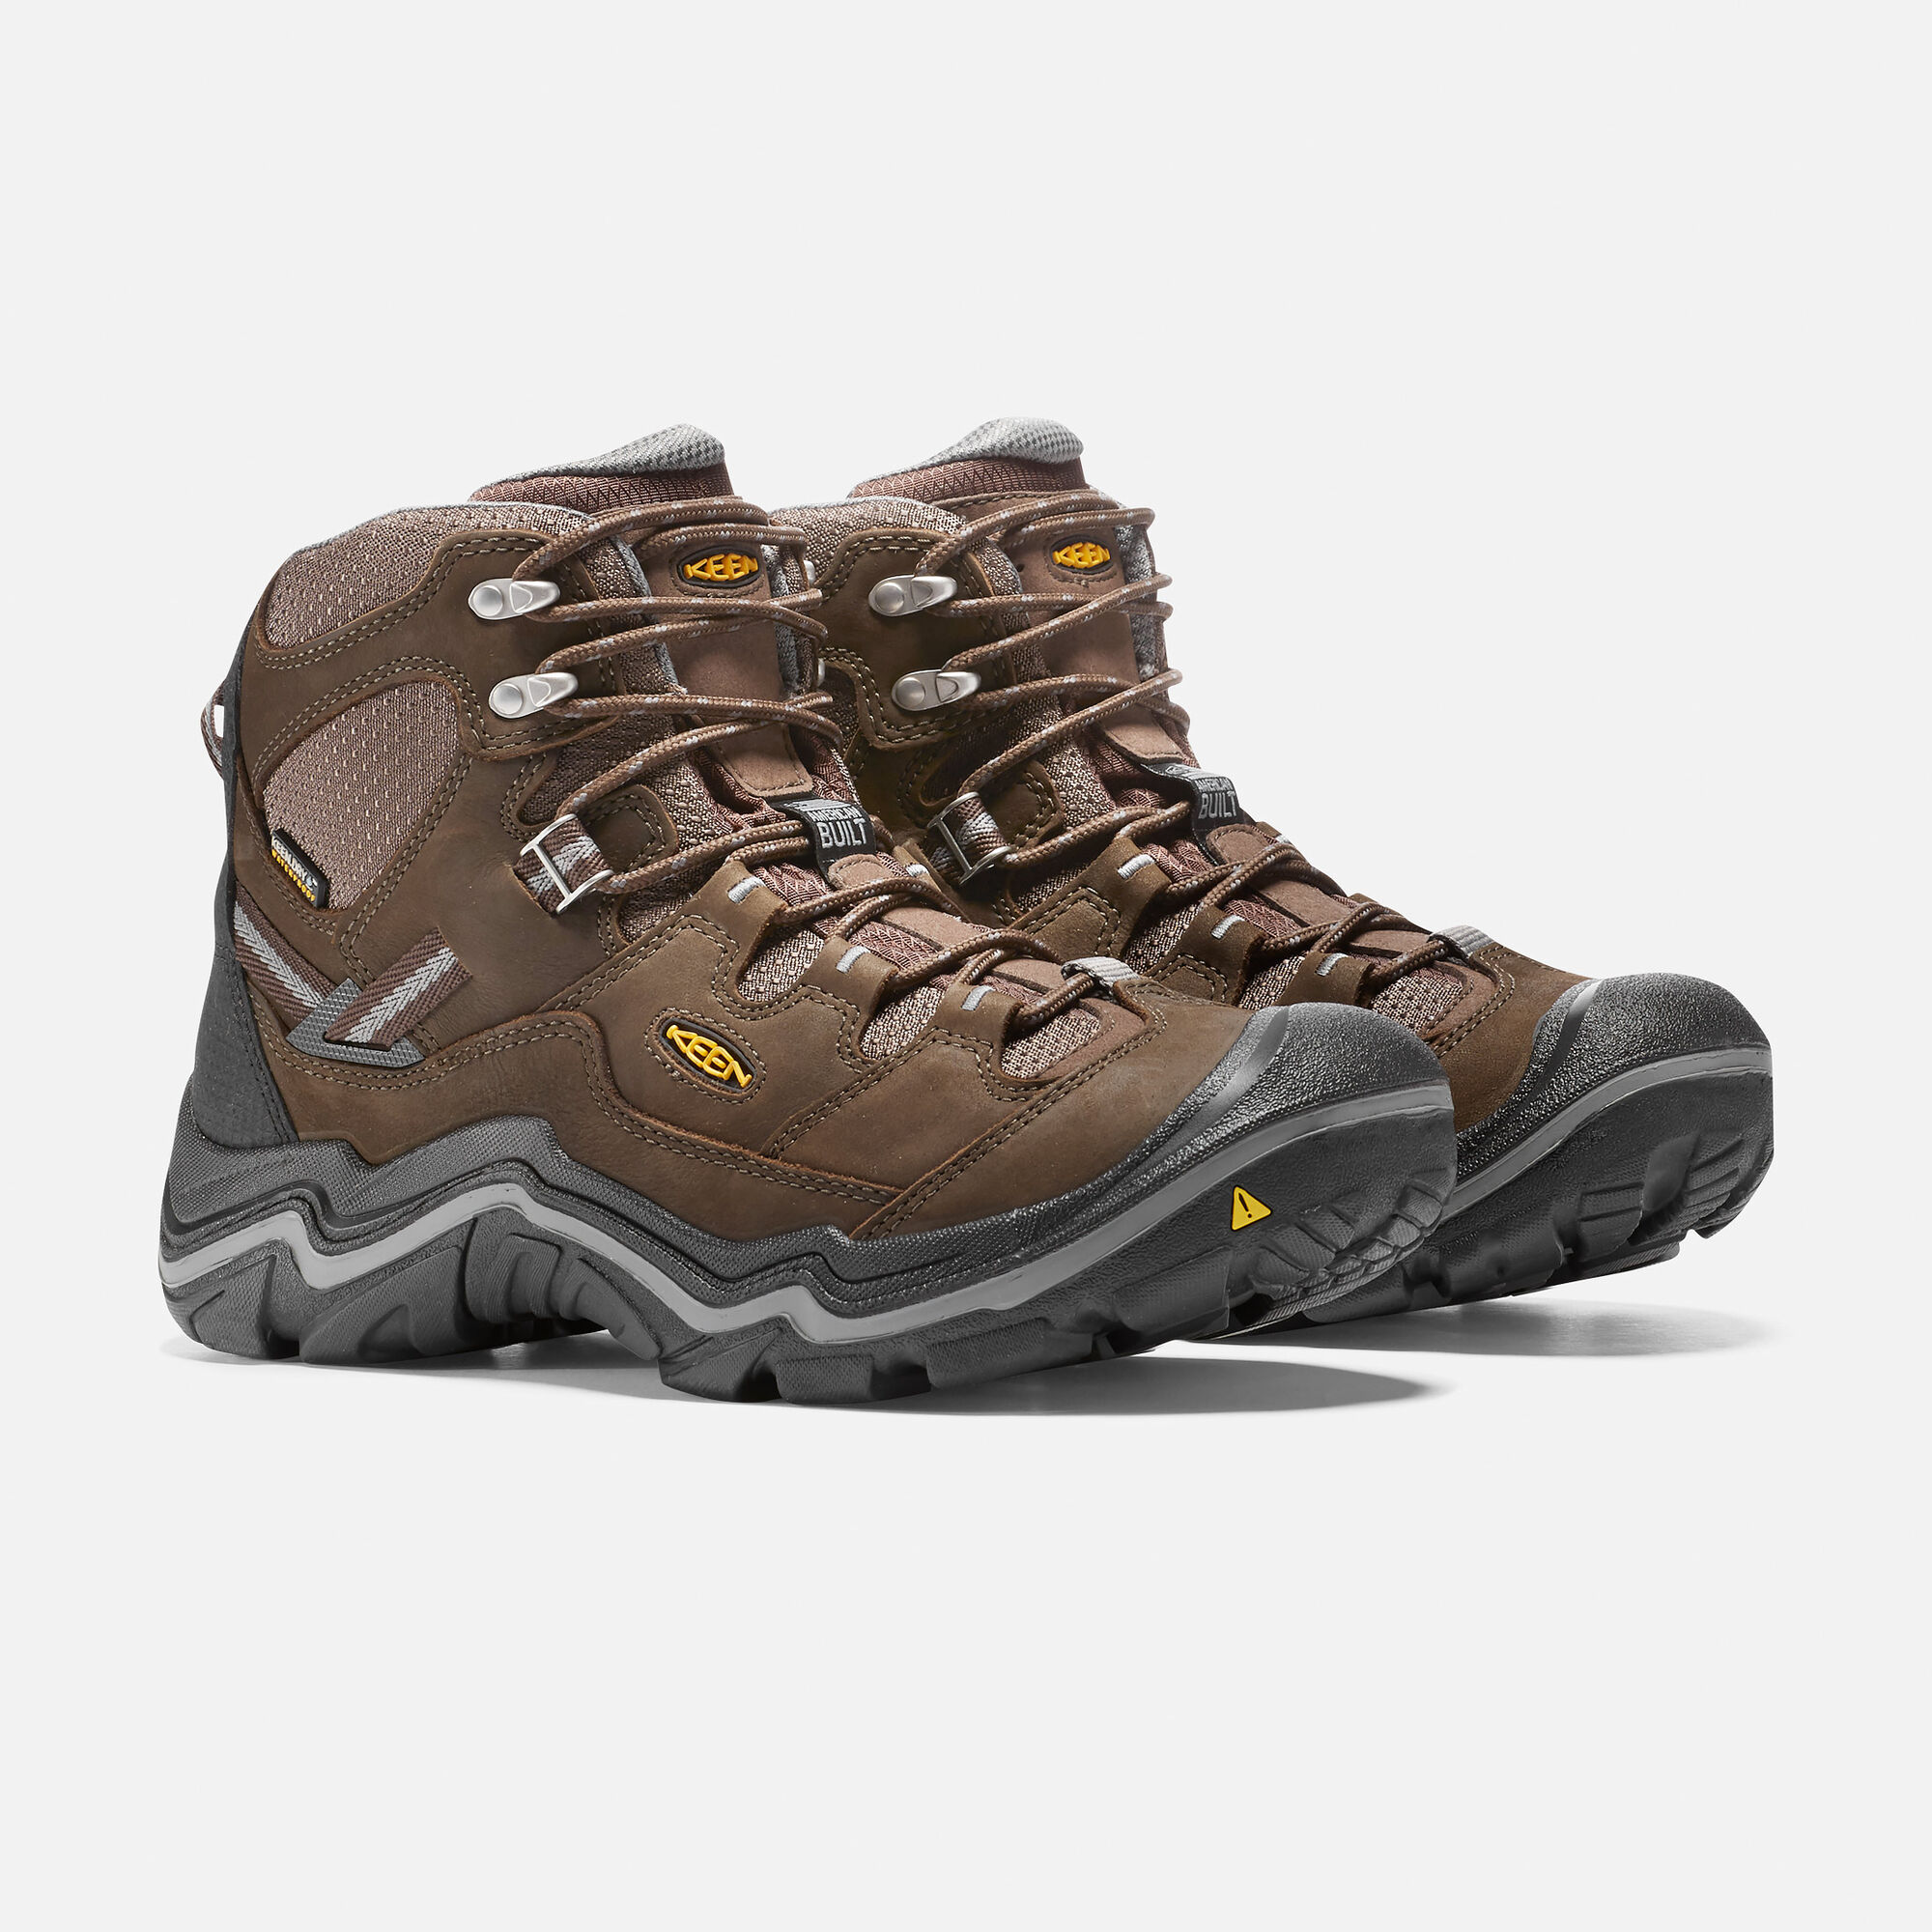 most comforter comfortable shoes burly jack boots hiking texapore vojo waterproof men wolfskin hike yellow mid